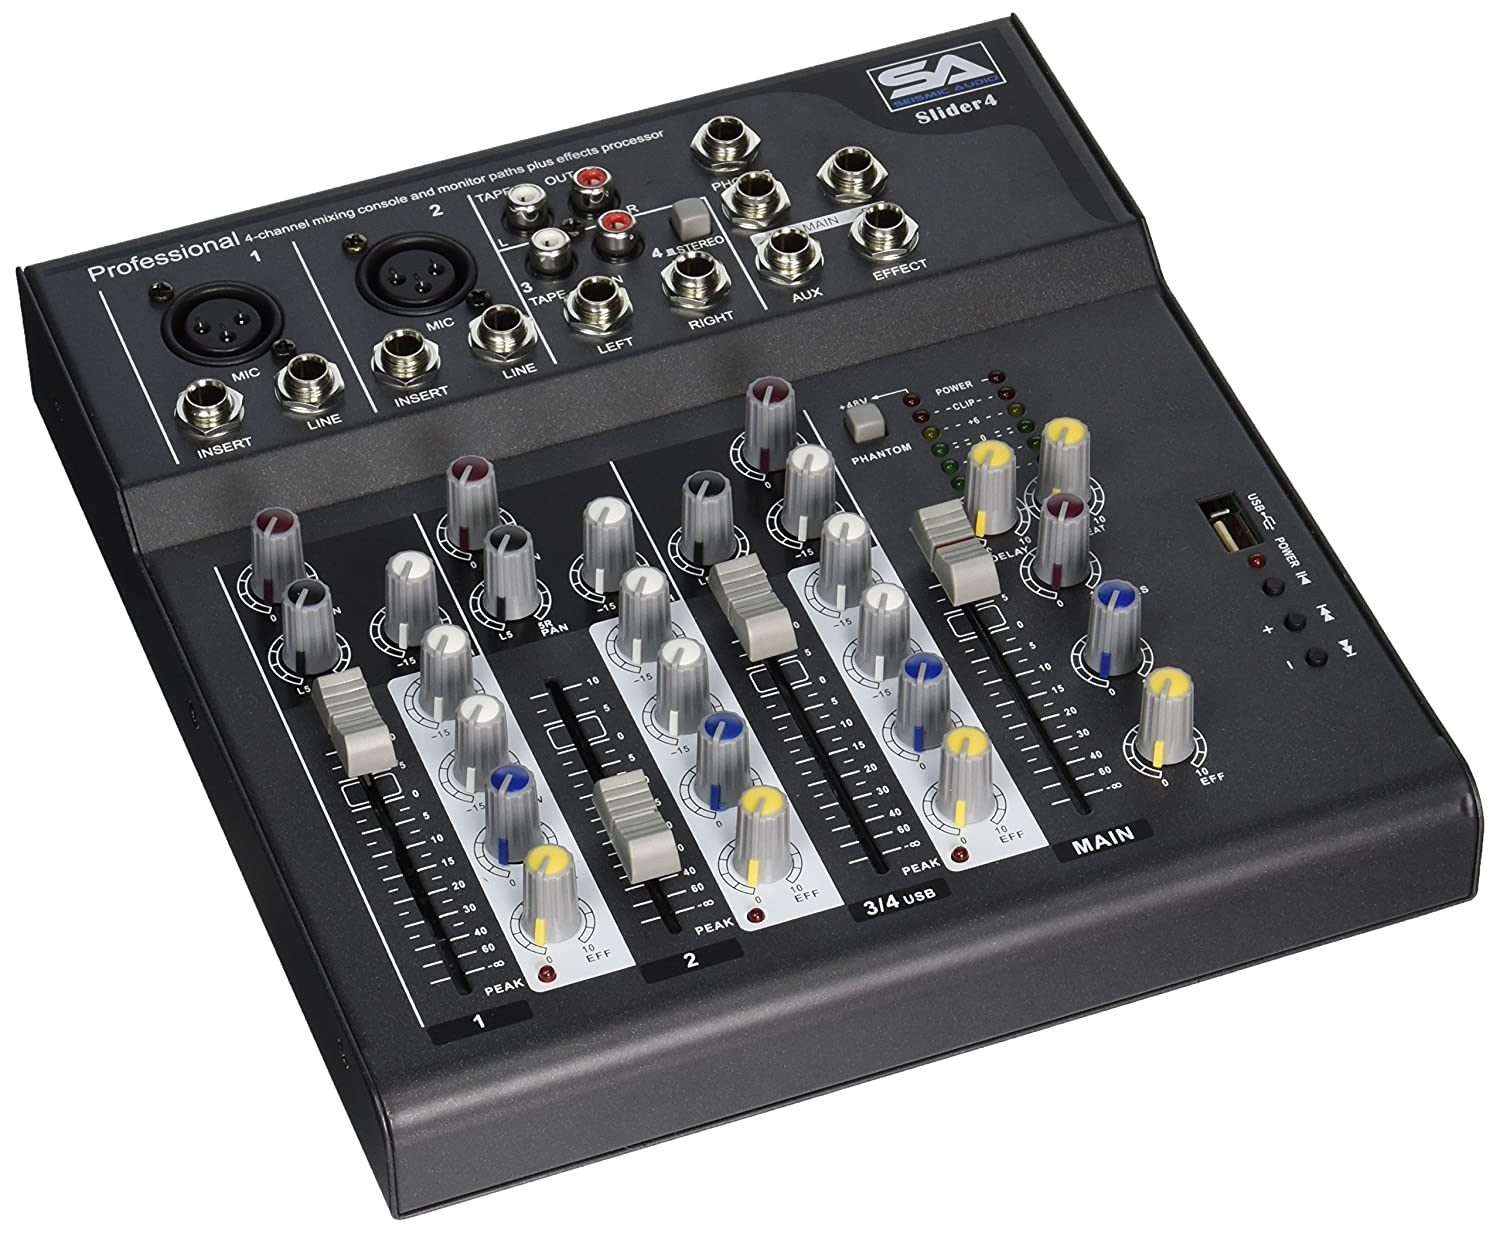 Seismic Audio - Slider4 - 4 Channel Mixer Console with USB Interface Seismic Audio Speakers Inc.